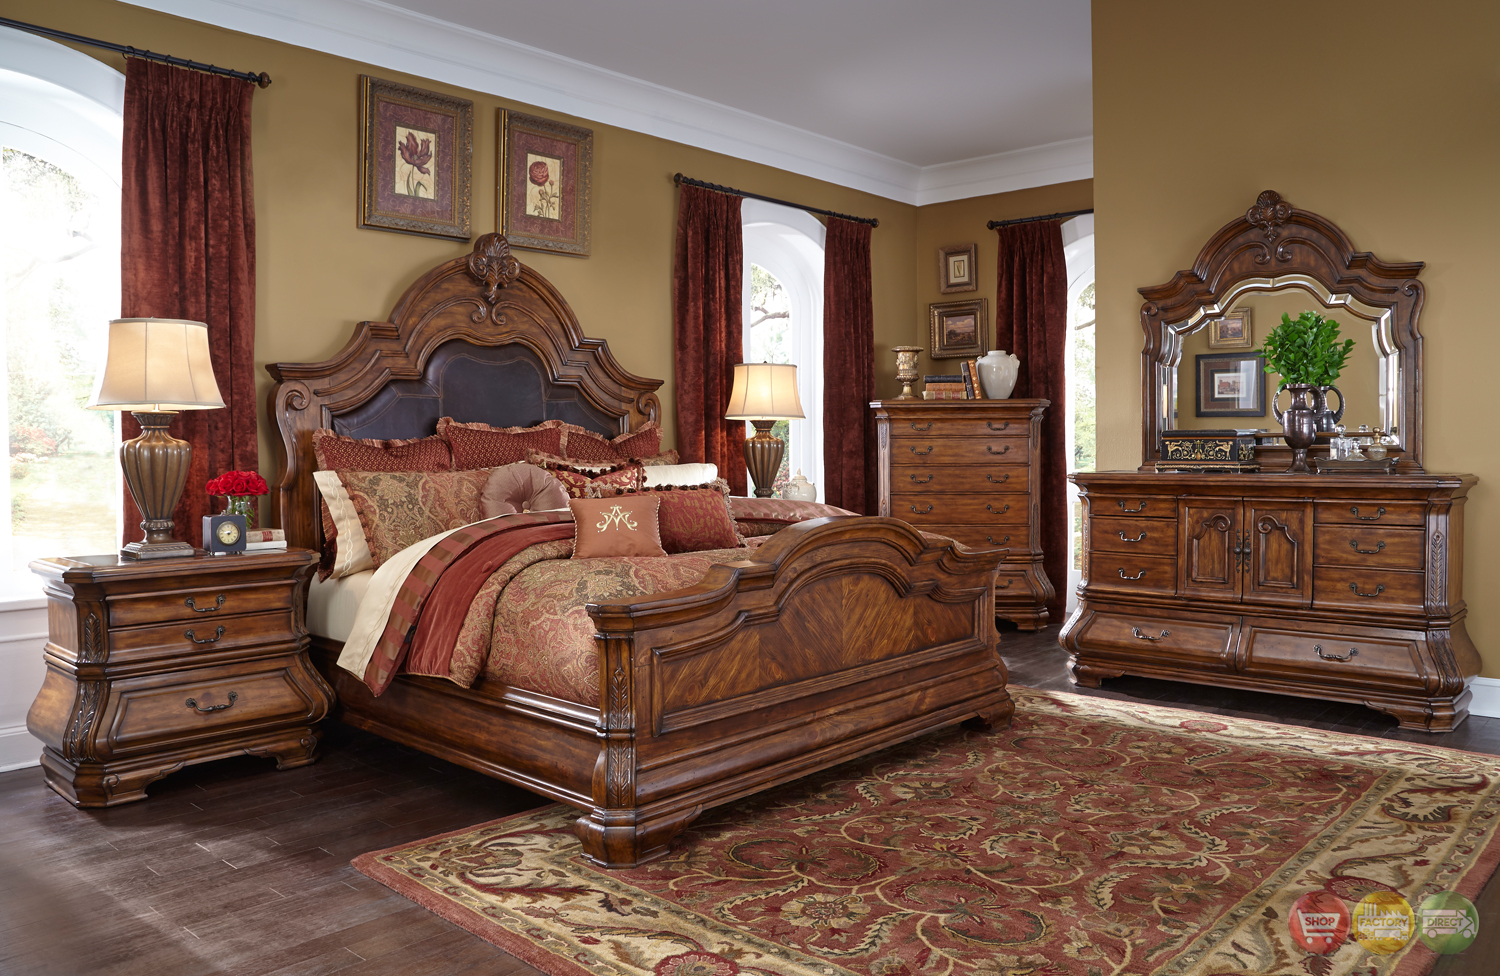 Tuscano melange luxury traditional queen bedroom furniture for Traditional bedroom furniture